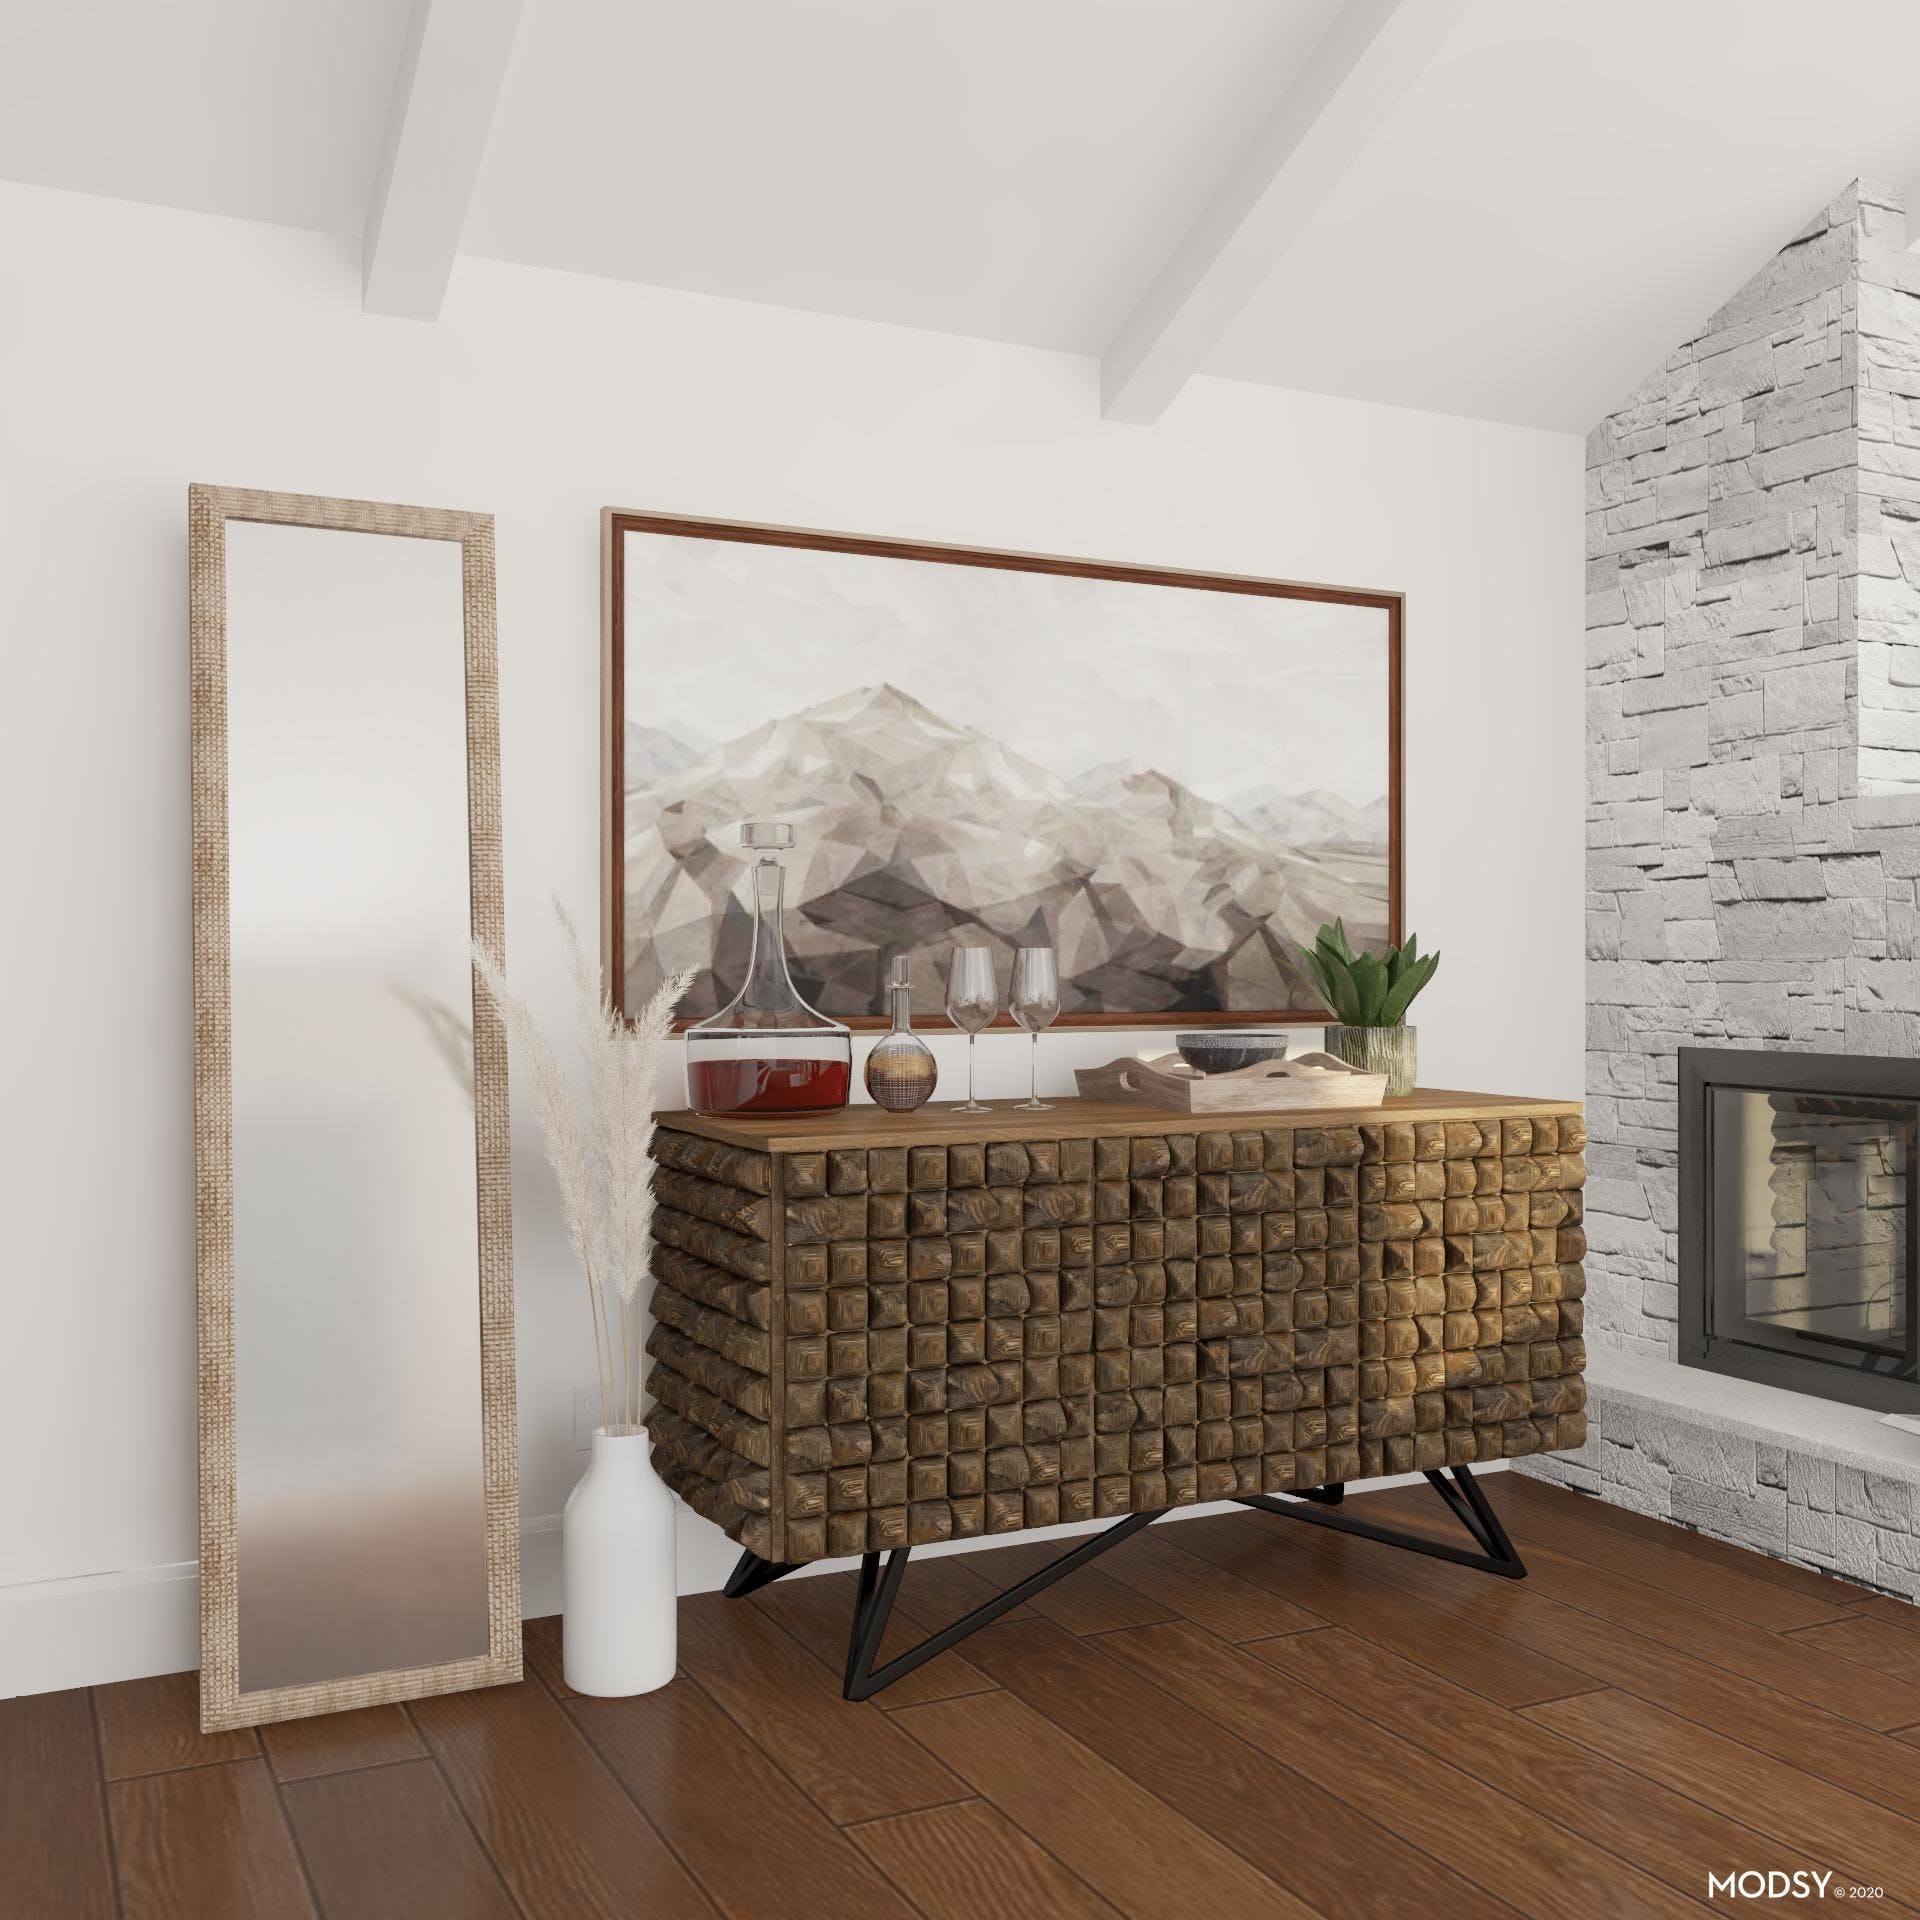 Styled Buffet: Textured Accents